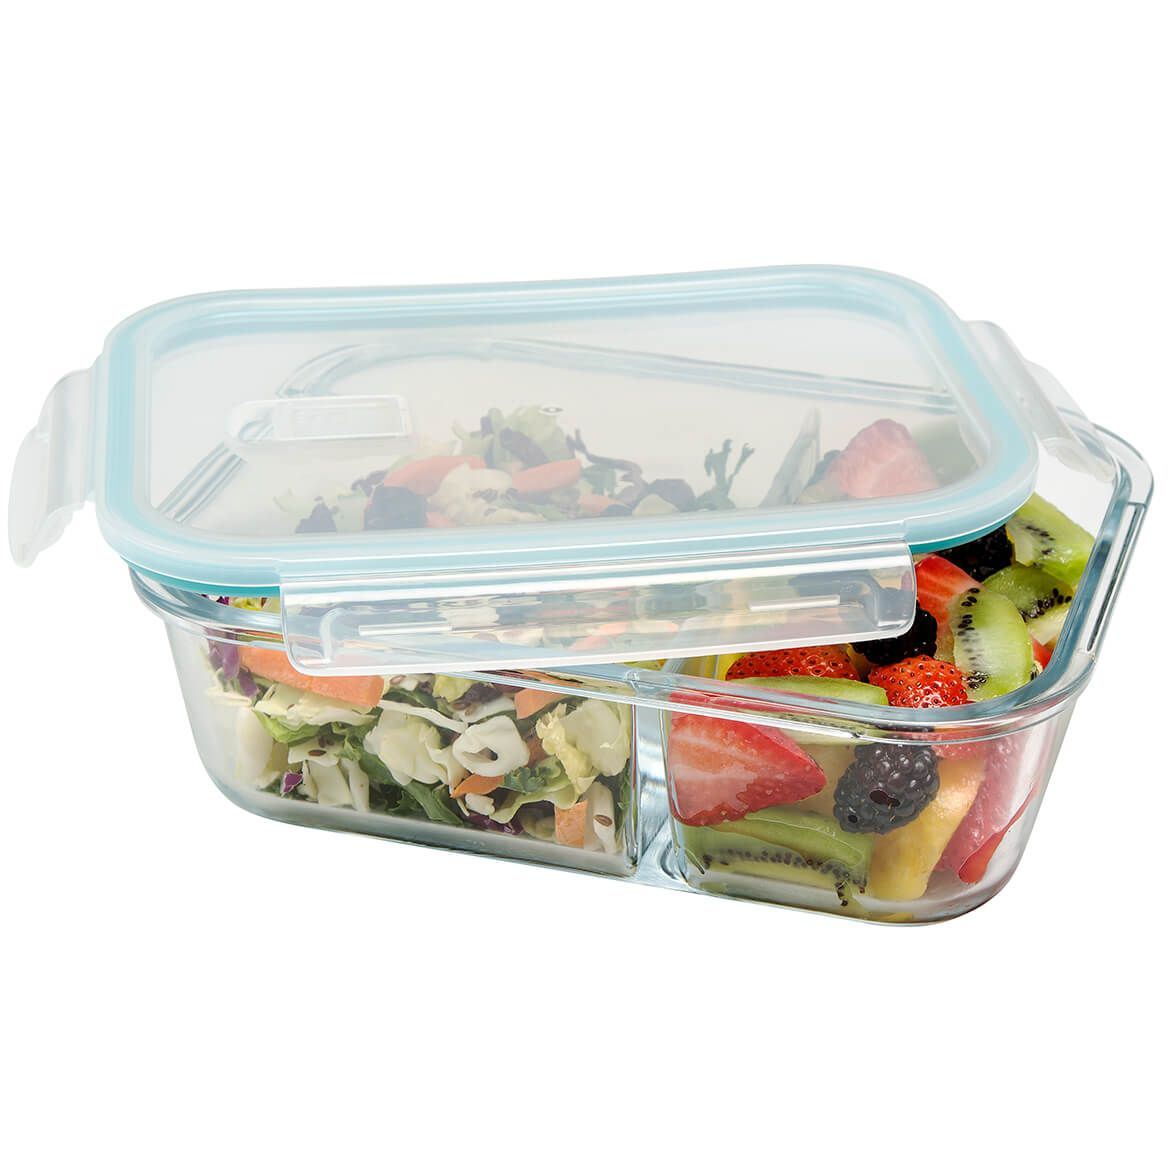 Seal & Lock Glass Food Storage by Chef's Pride-368392